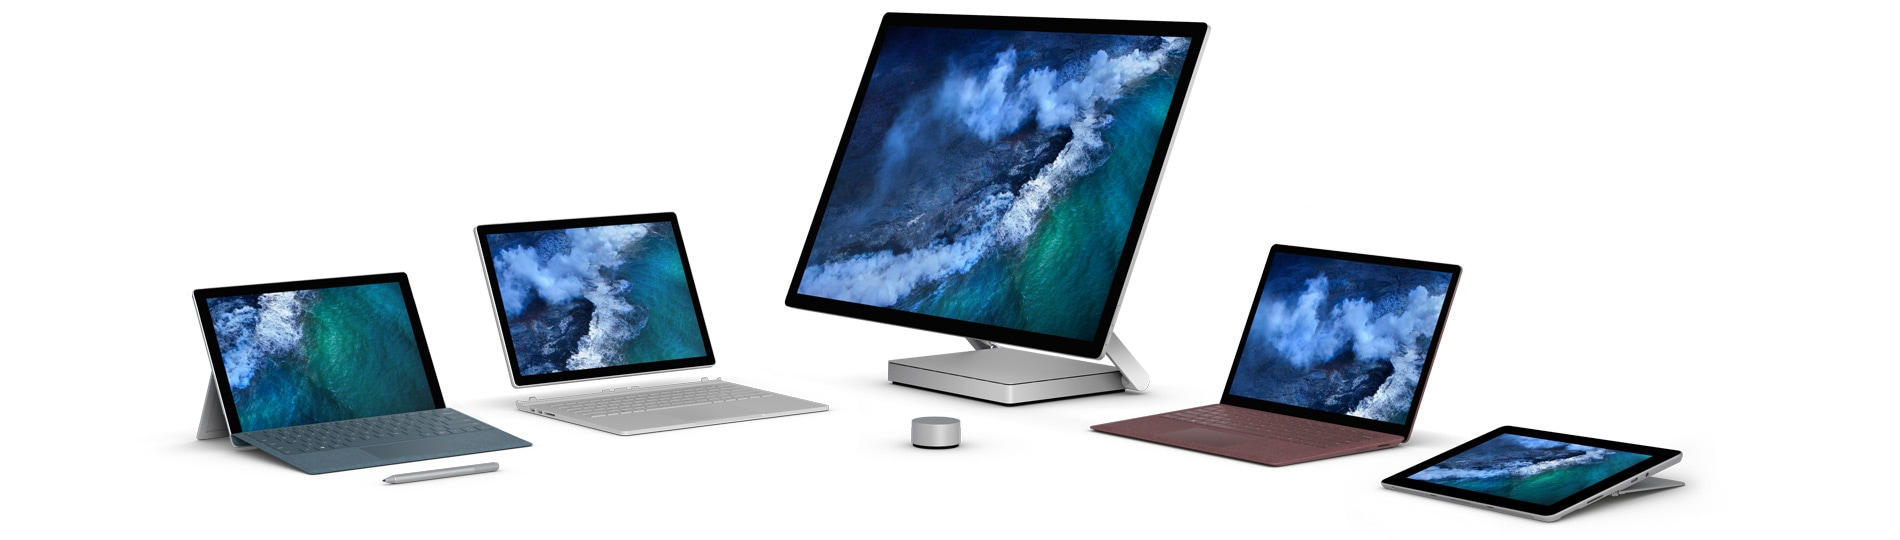 The Surface family, including Surface Pro, Surface Book 2, Surface Studio, Surface Laptop, and Surface Go